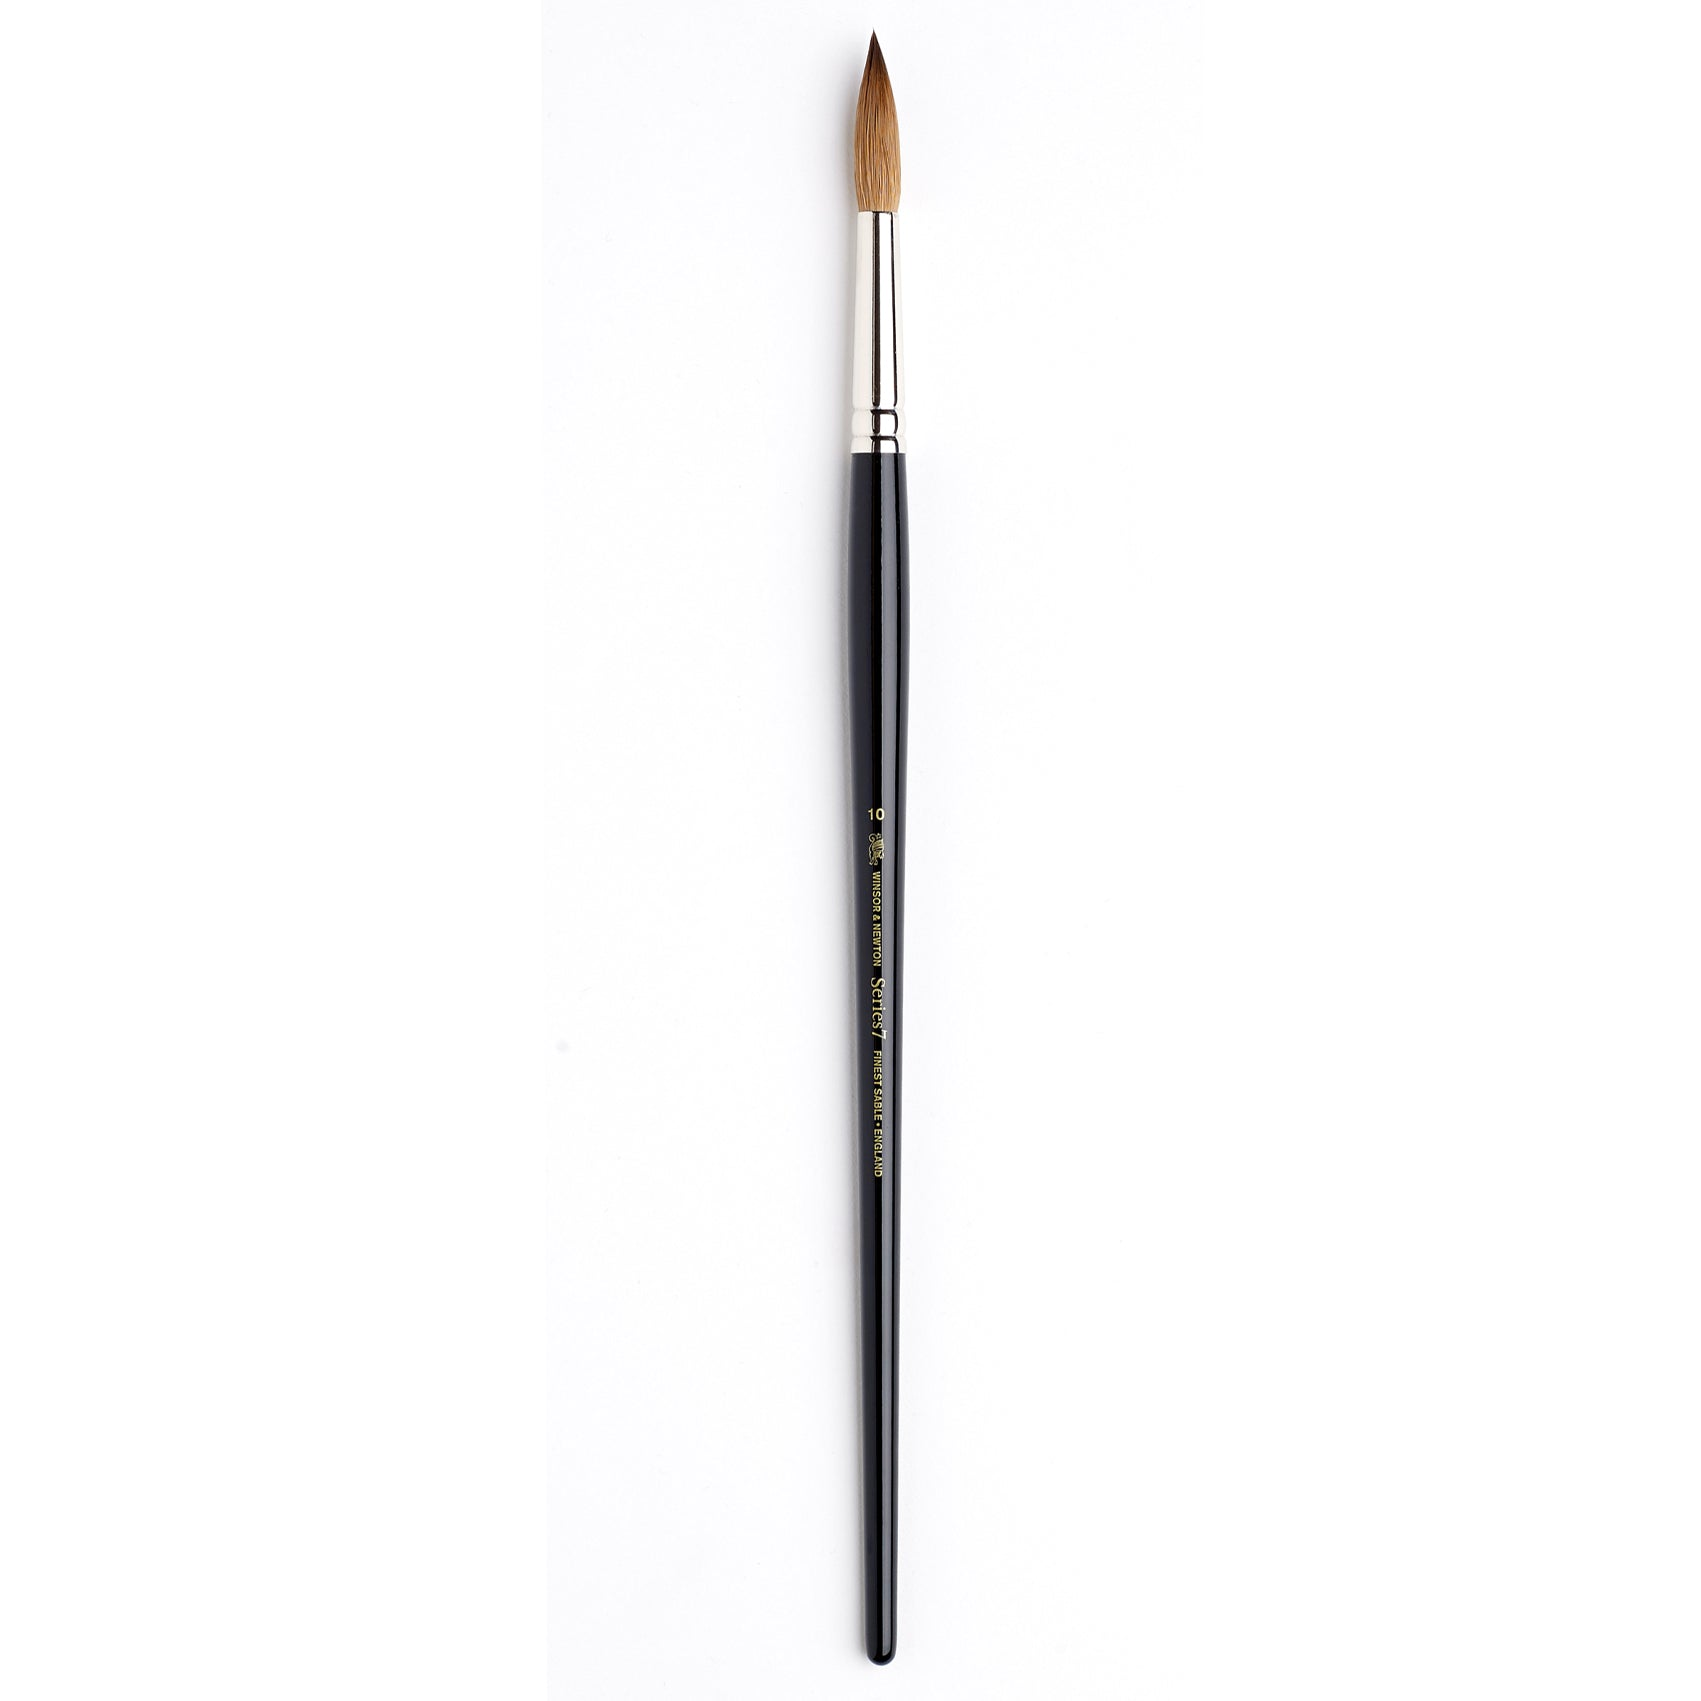 The Series 7 Kolinsky Sable Brush is considered the finest quality watercolour brush made. Winsor and Newton use only the finest Kolinsky Sable hair in rust-proof, seamless nickel-plated ferrules with black polished handles.